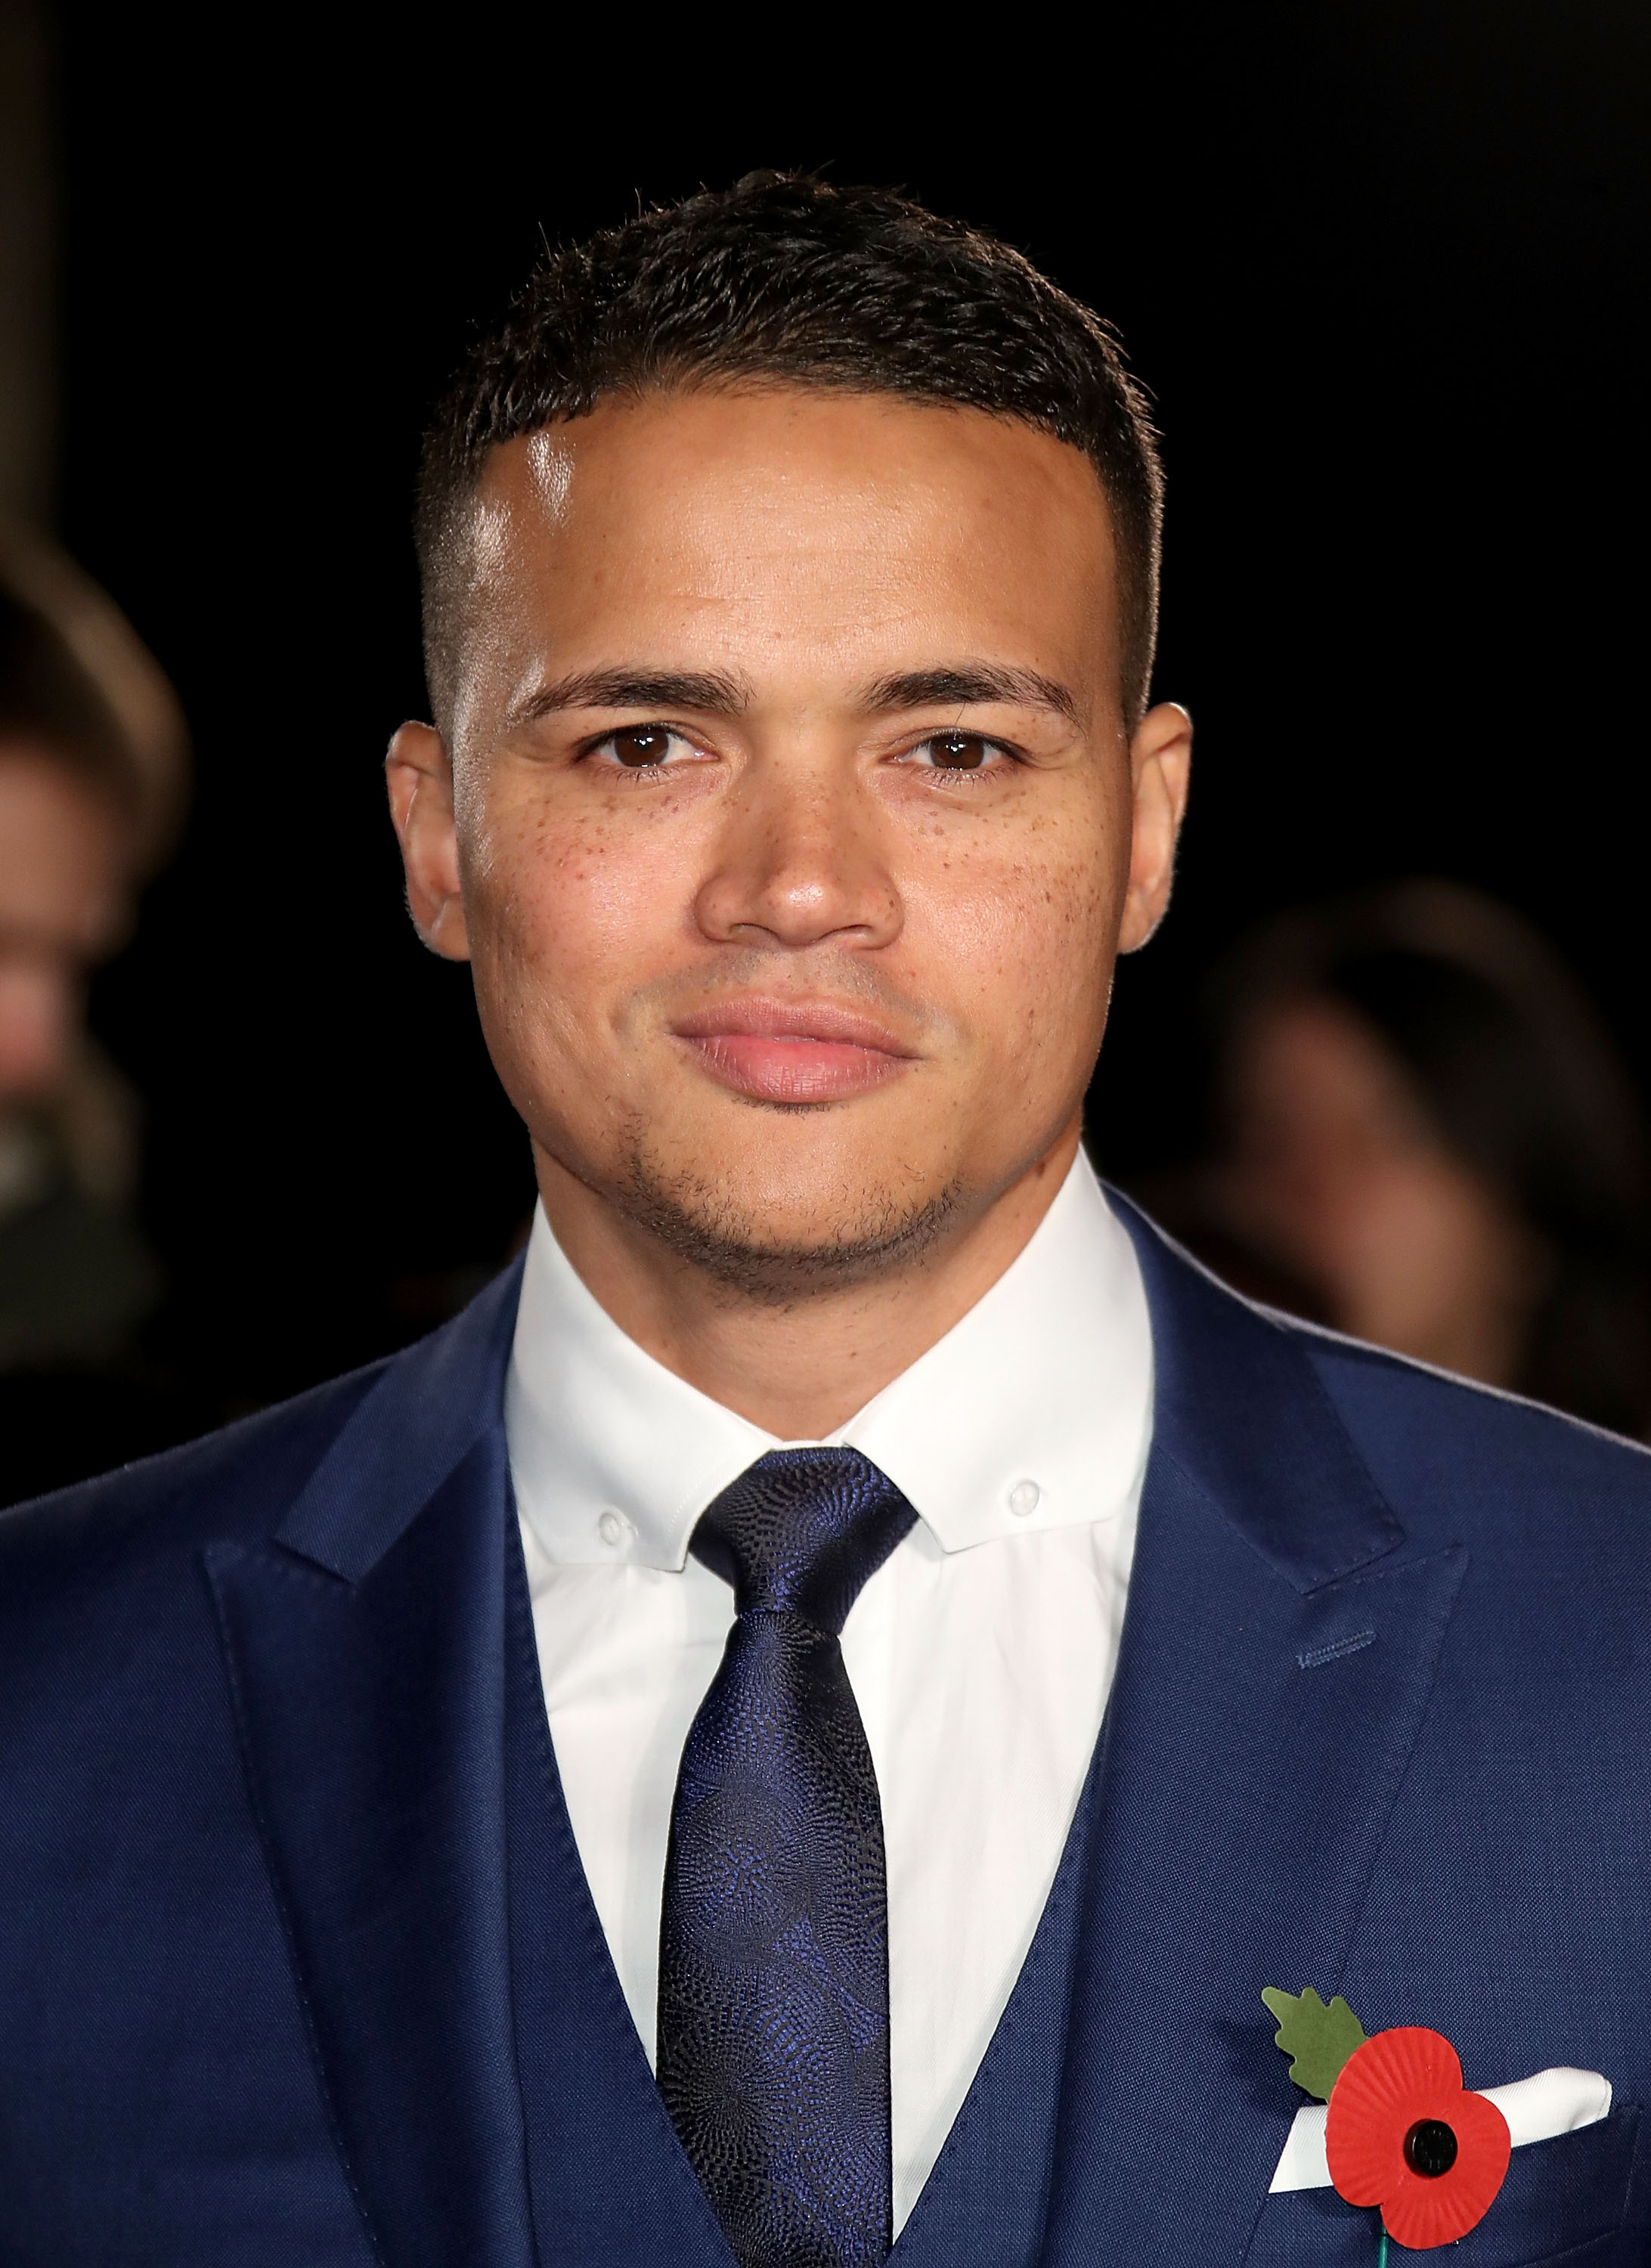 Match of the Day presenter Jermaine Jenas, Getty, BD